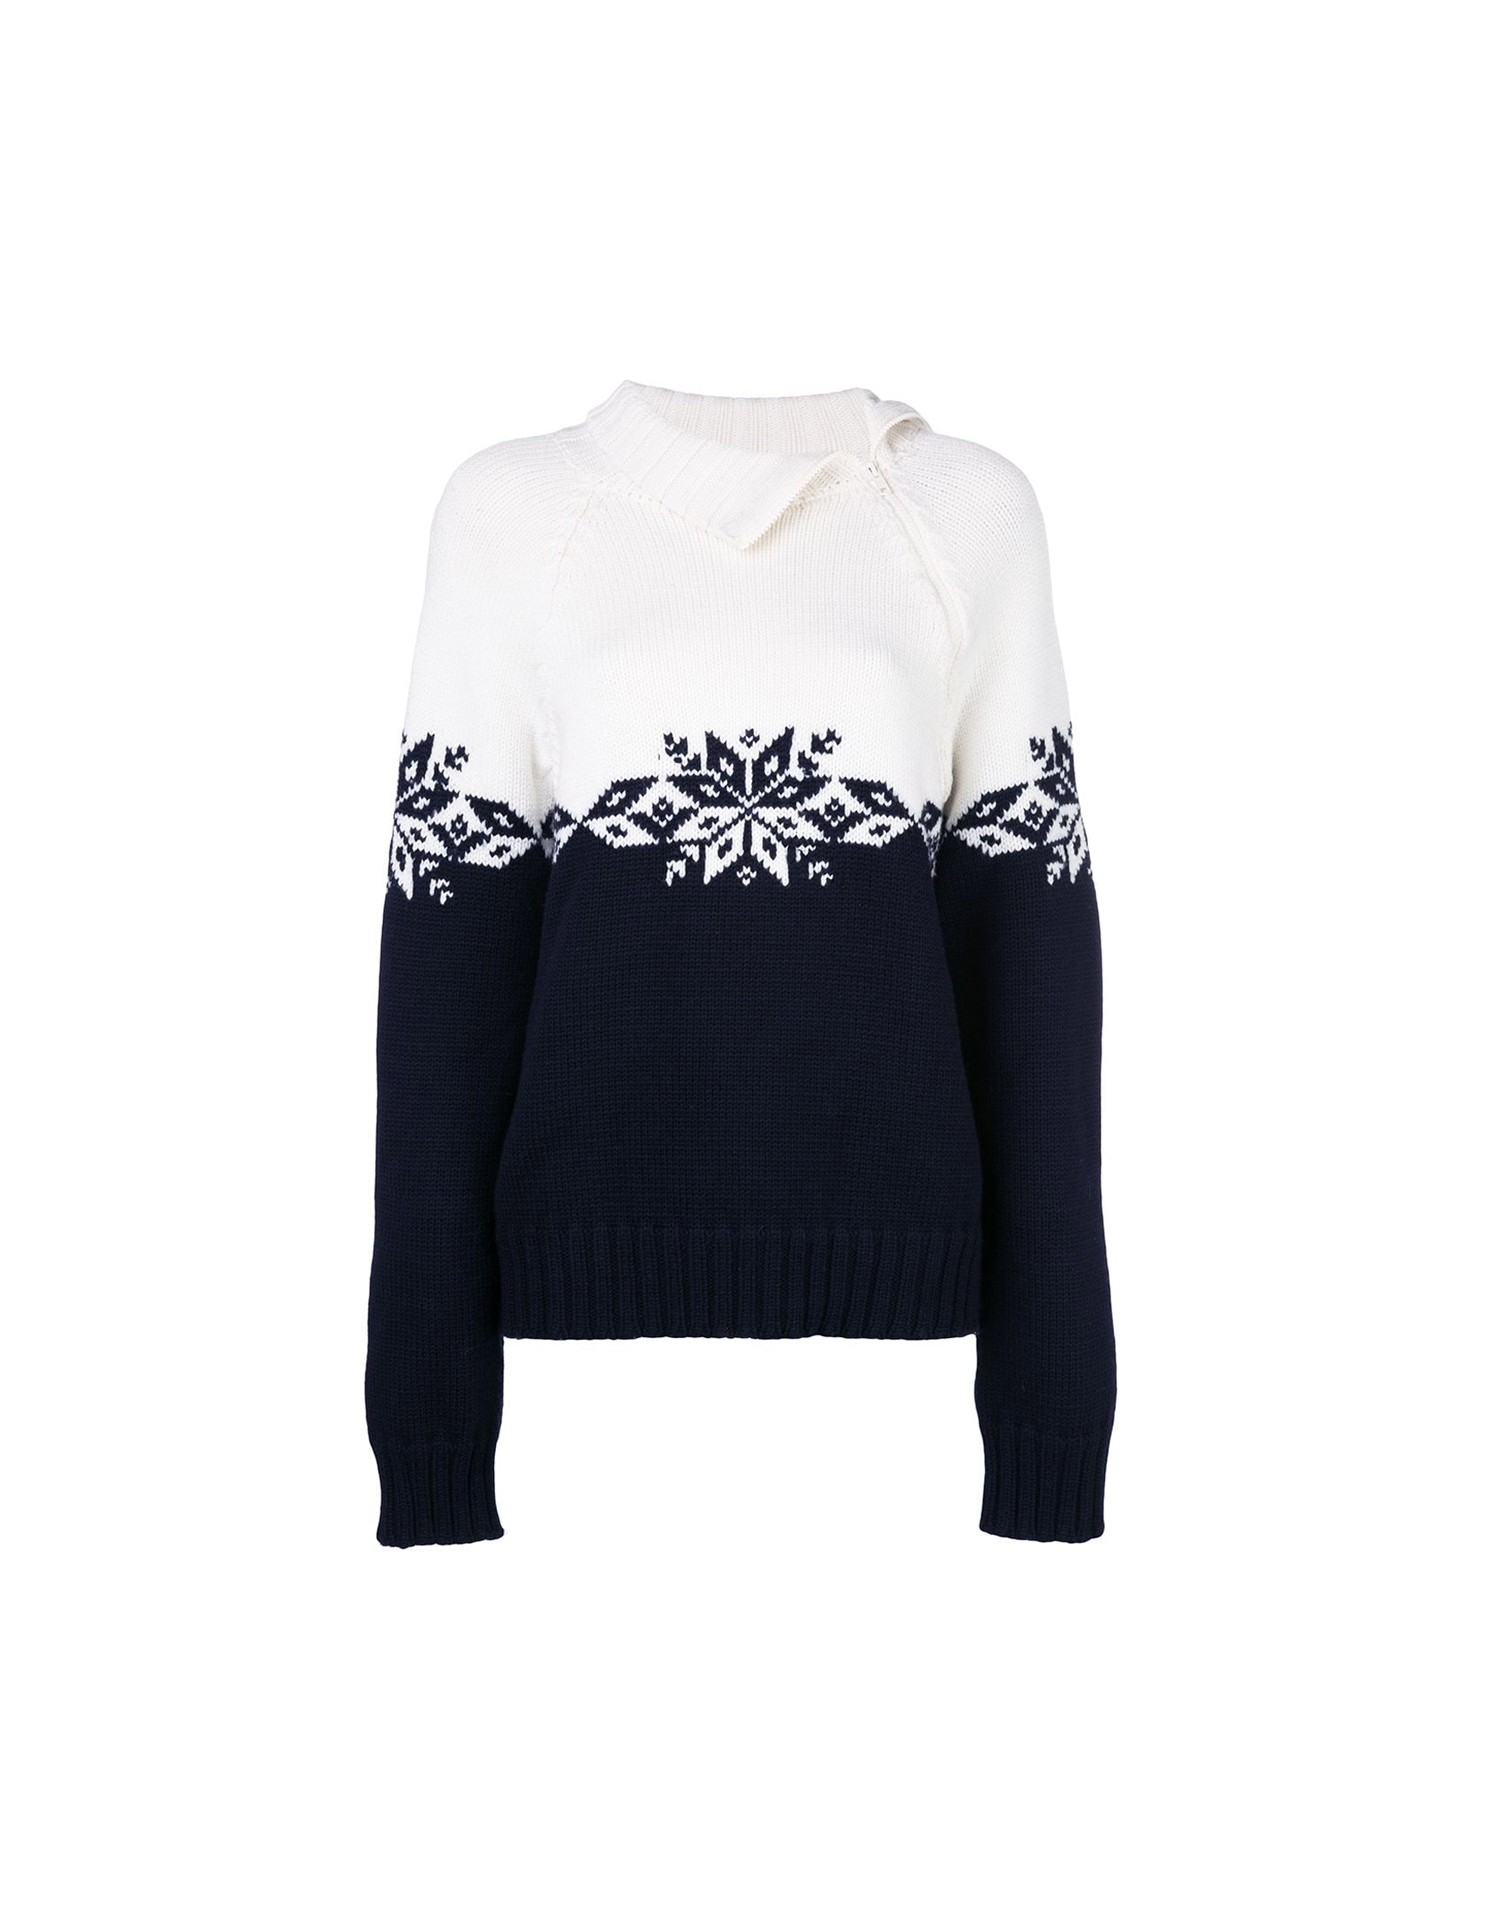 MONSE Snowflake Zip Turtleneck Flat Front